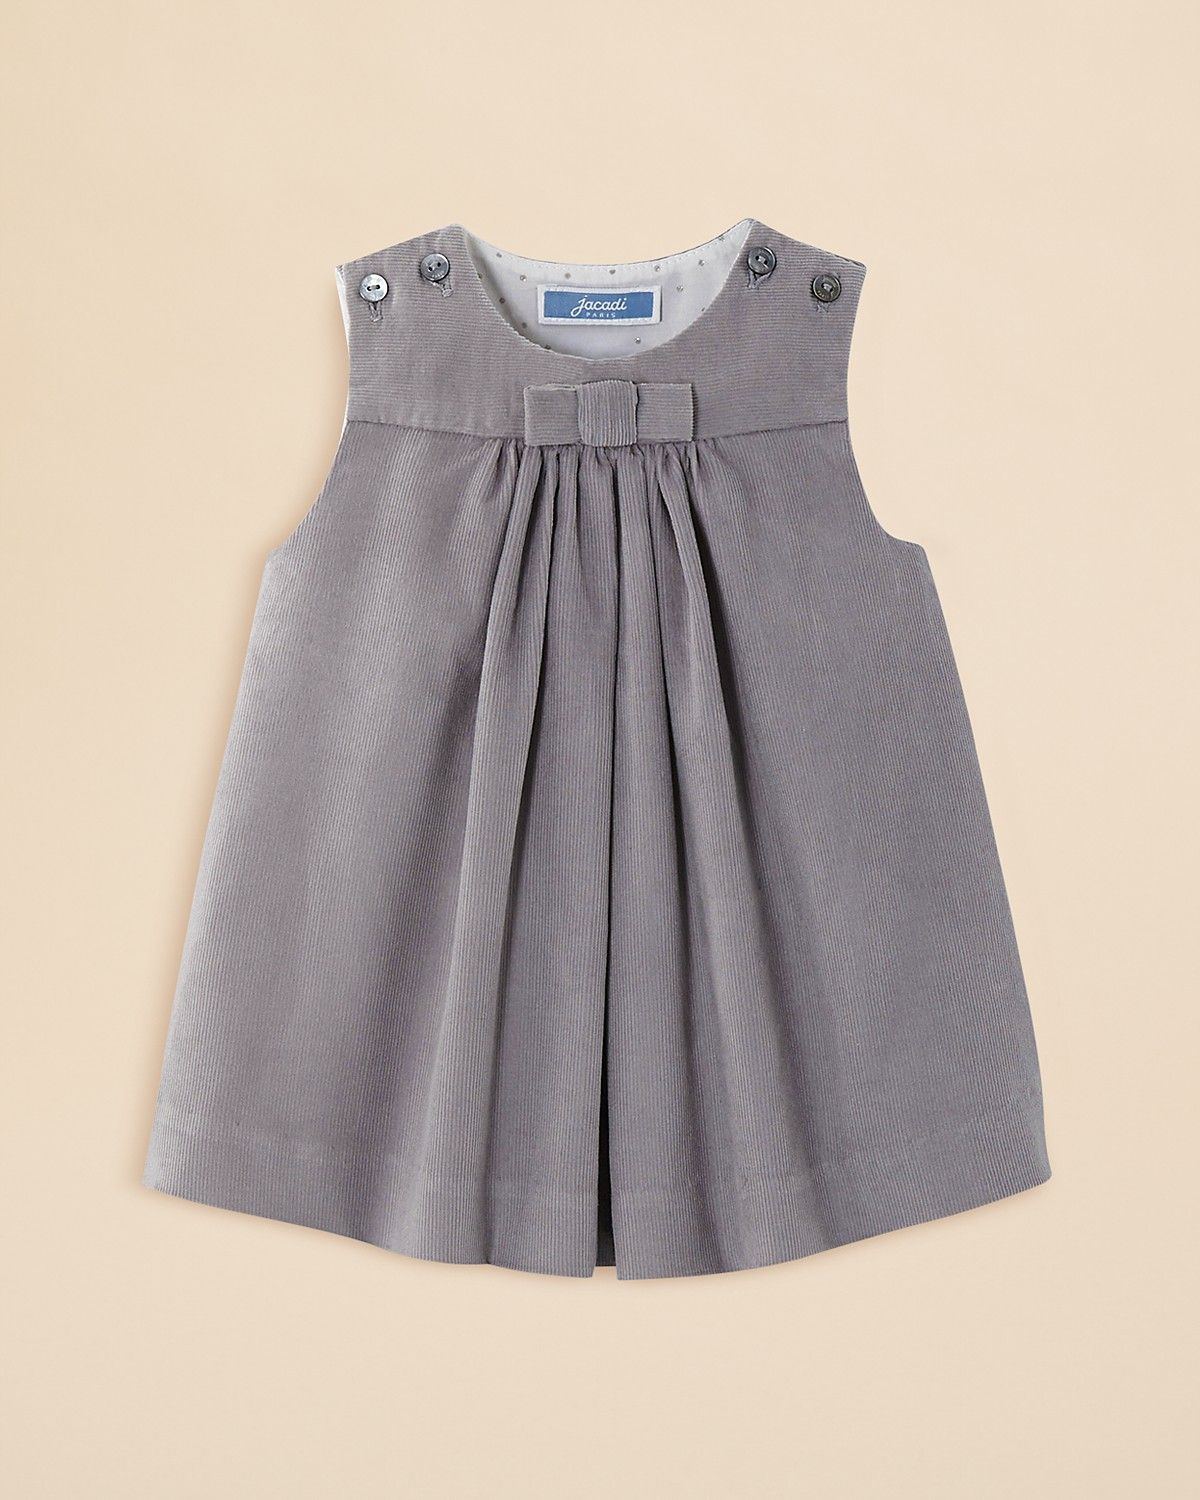 a99124a889fd0 Jacadi Infant Girls' Pleated Corduroy Dress - Sizes 3-12 Months |  Bloomingdale's